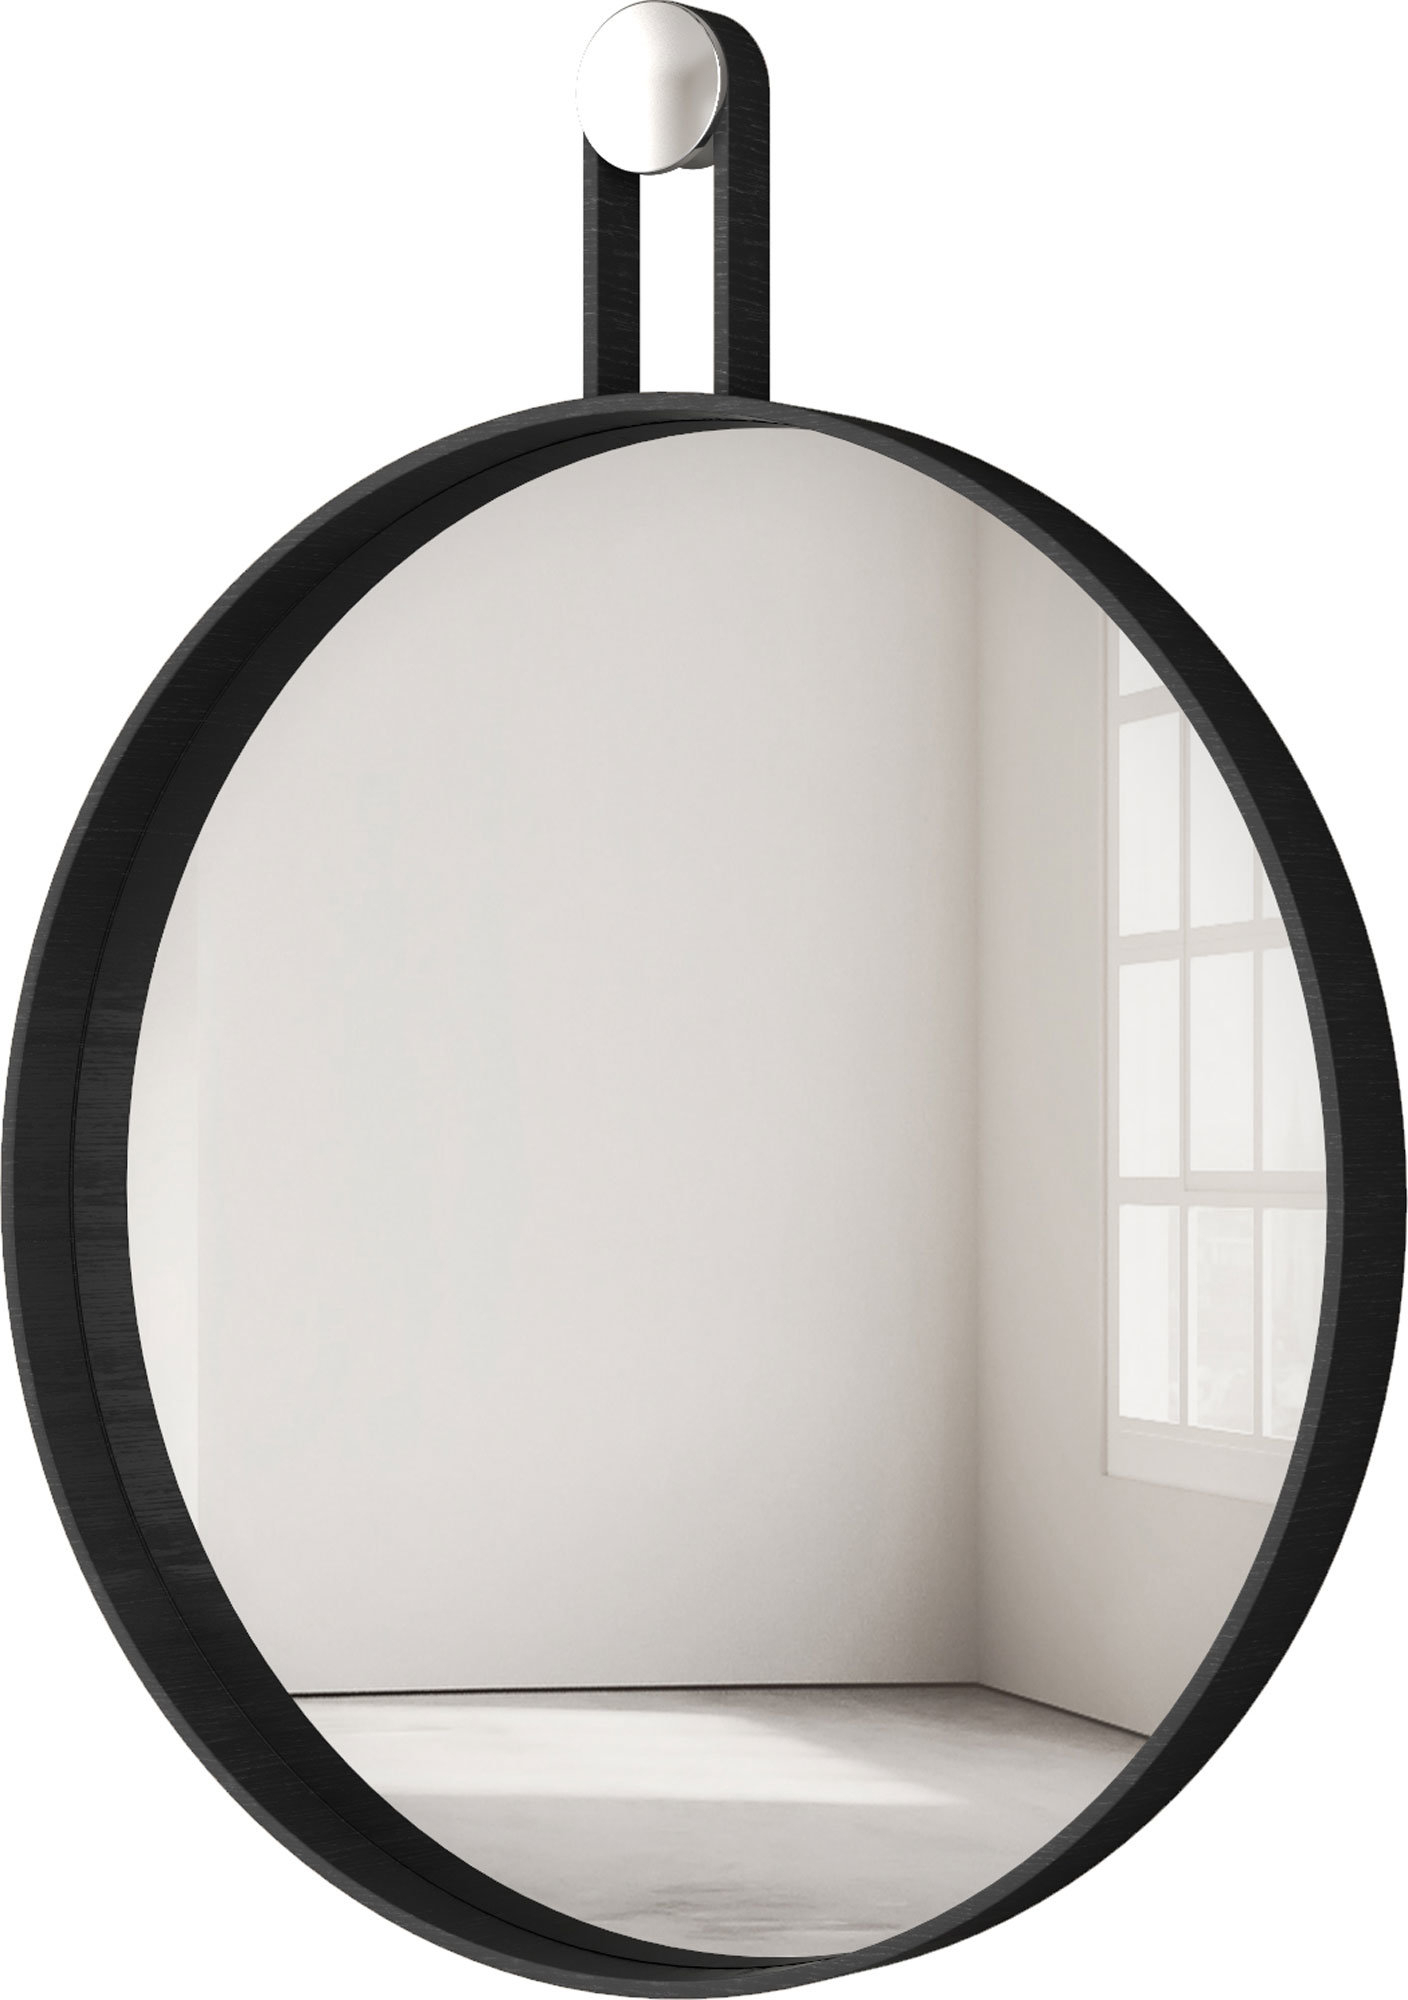 Lilie Accent Mirror Inside Luna Accent Mirrors (View 12 of 30)